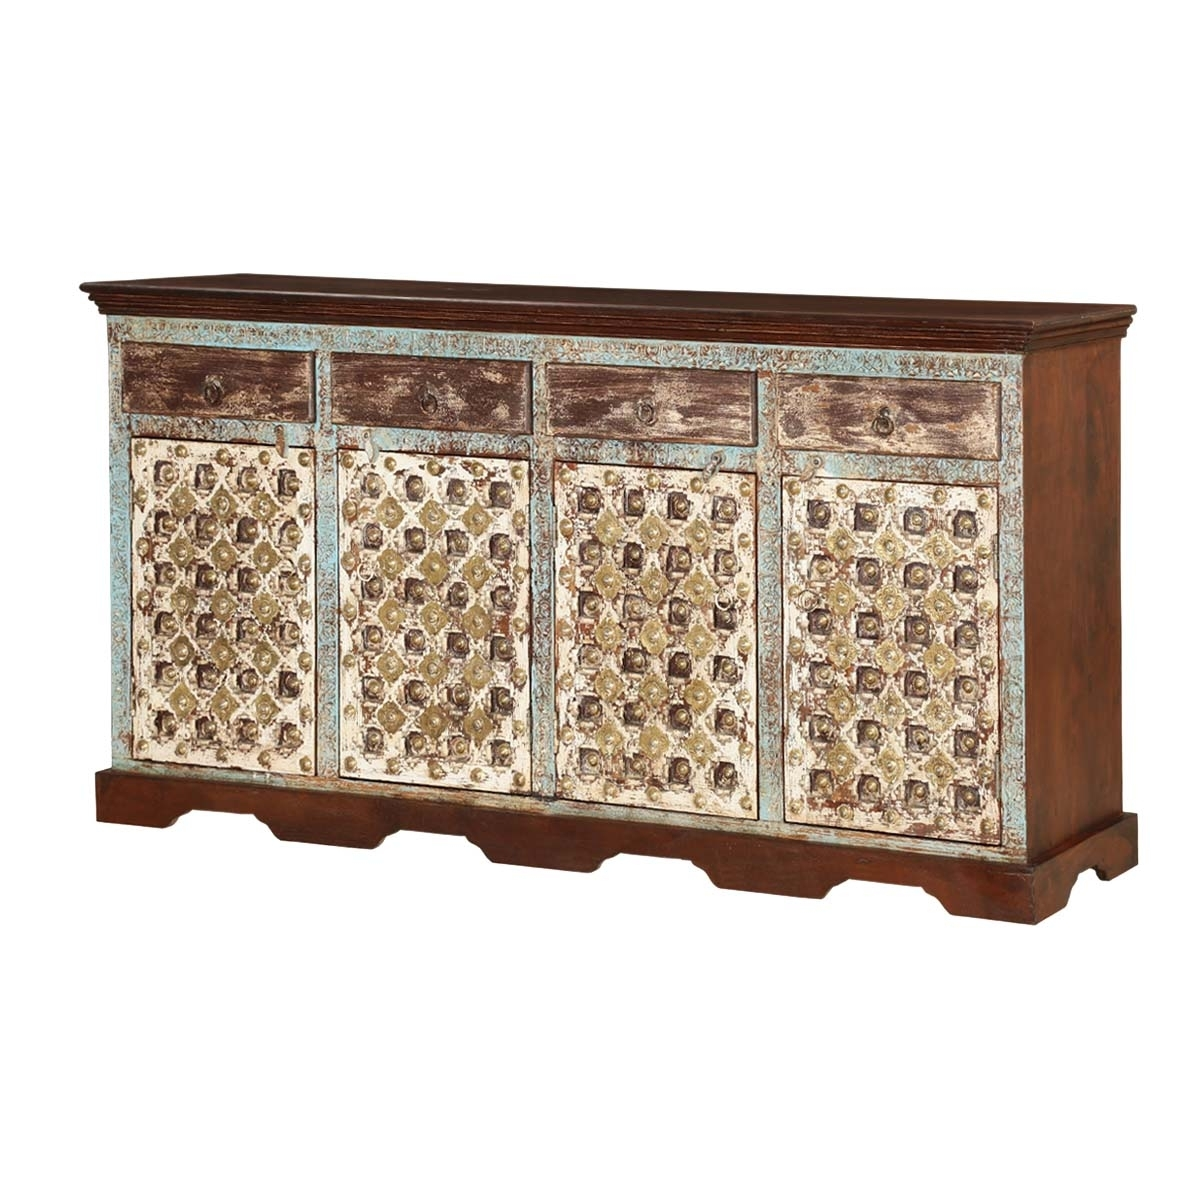 Oklahoma Handcrafted Solid Wood 4 Drawer Sideboard Cabinet within Open Shelf Brass 4-Drawer Sideboards (Image 12 of 30)